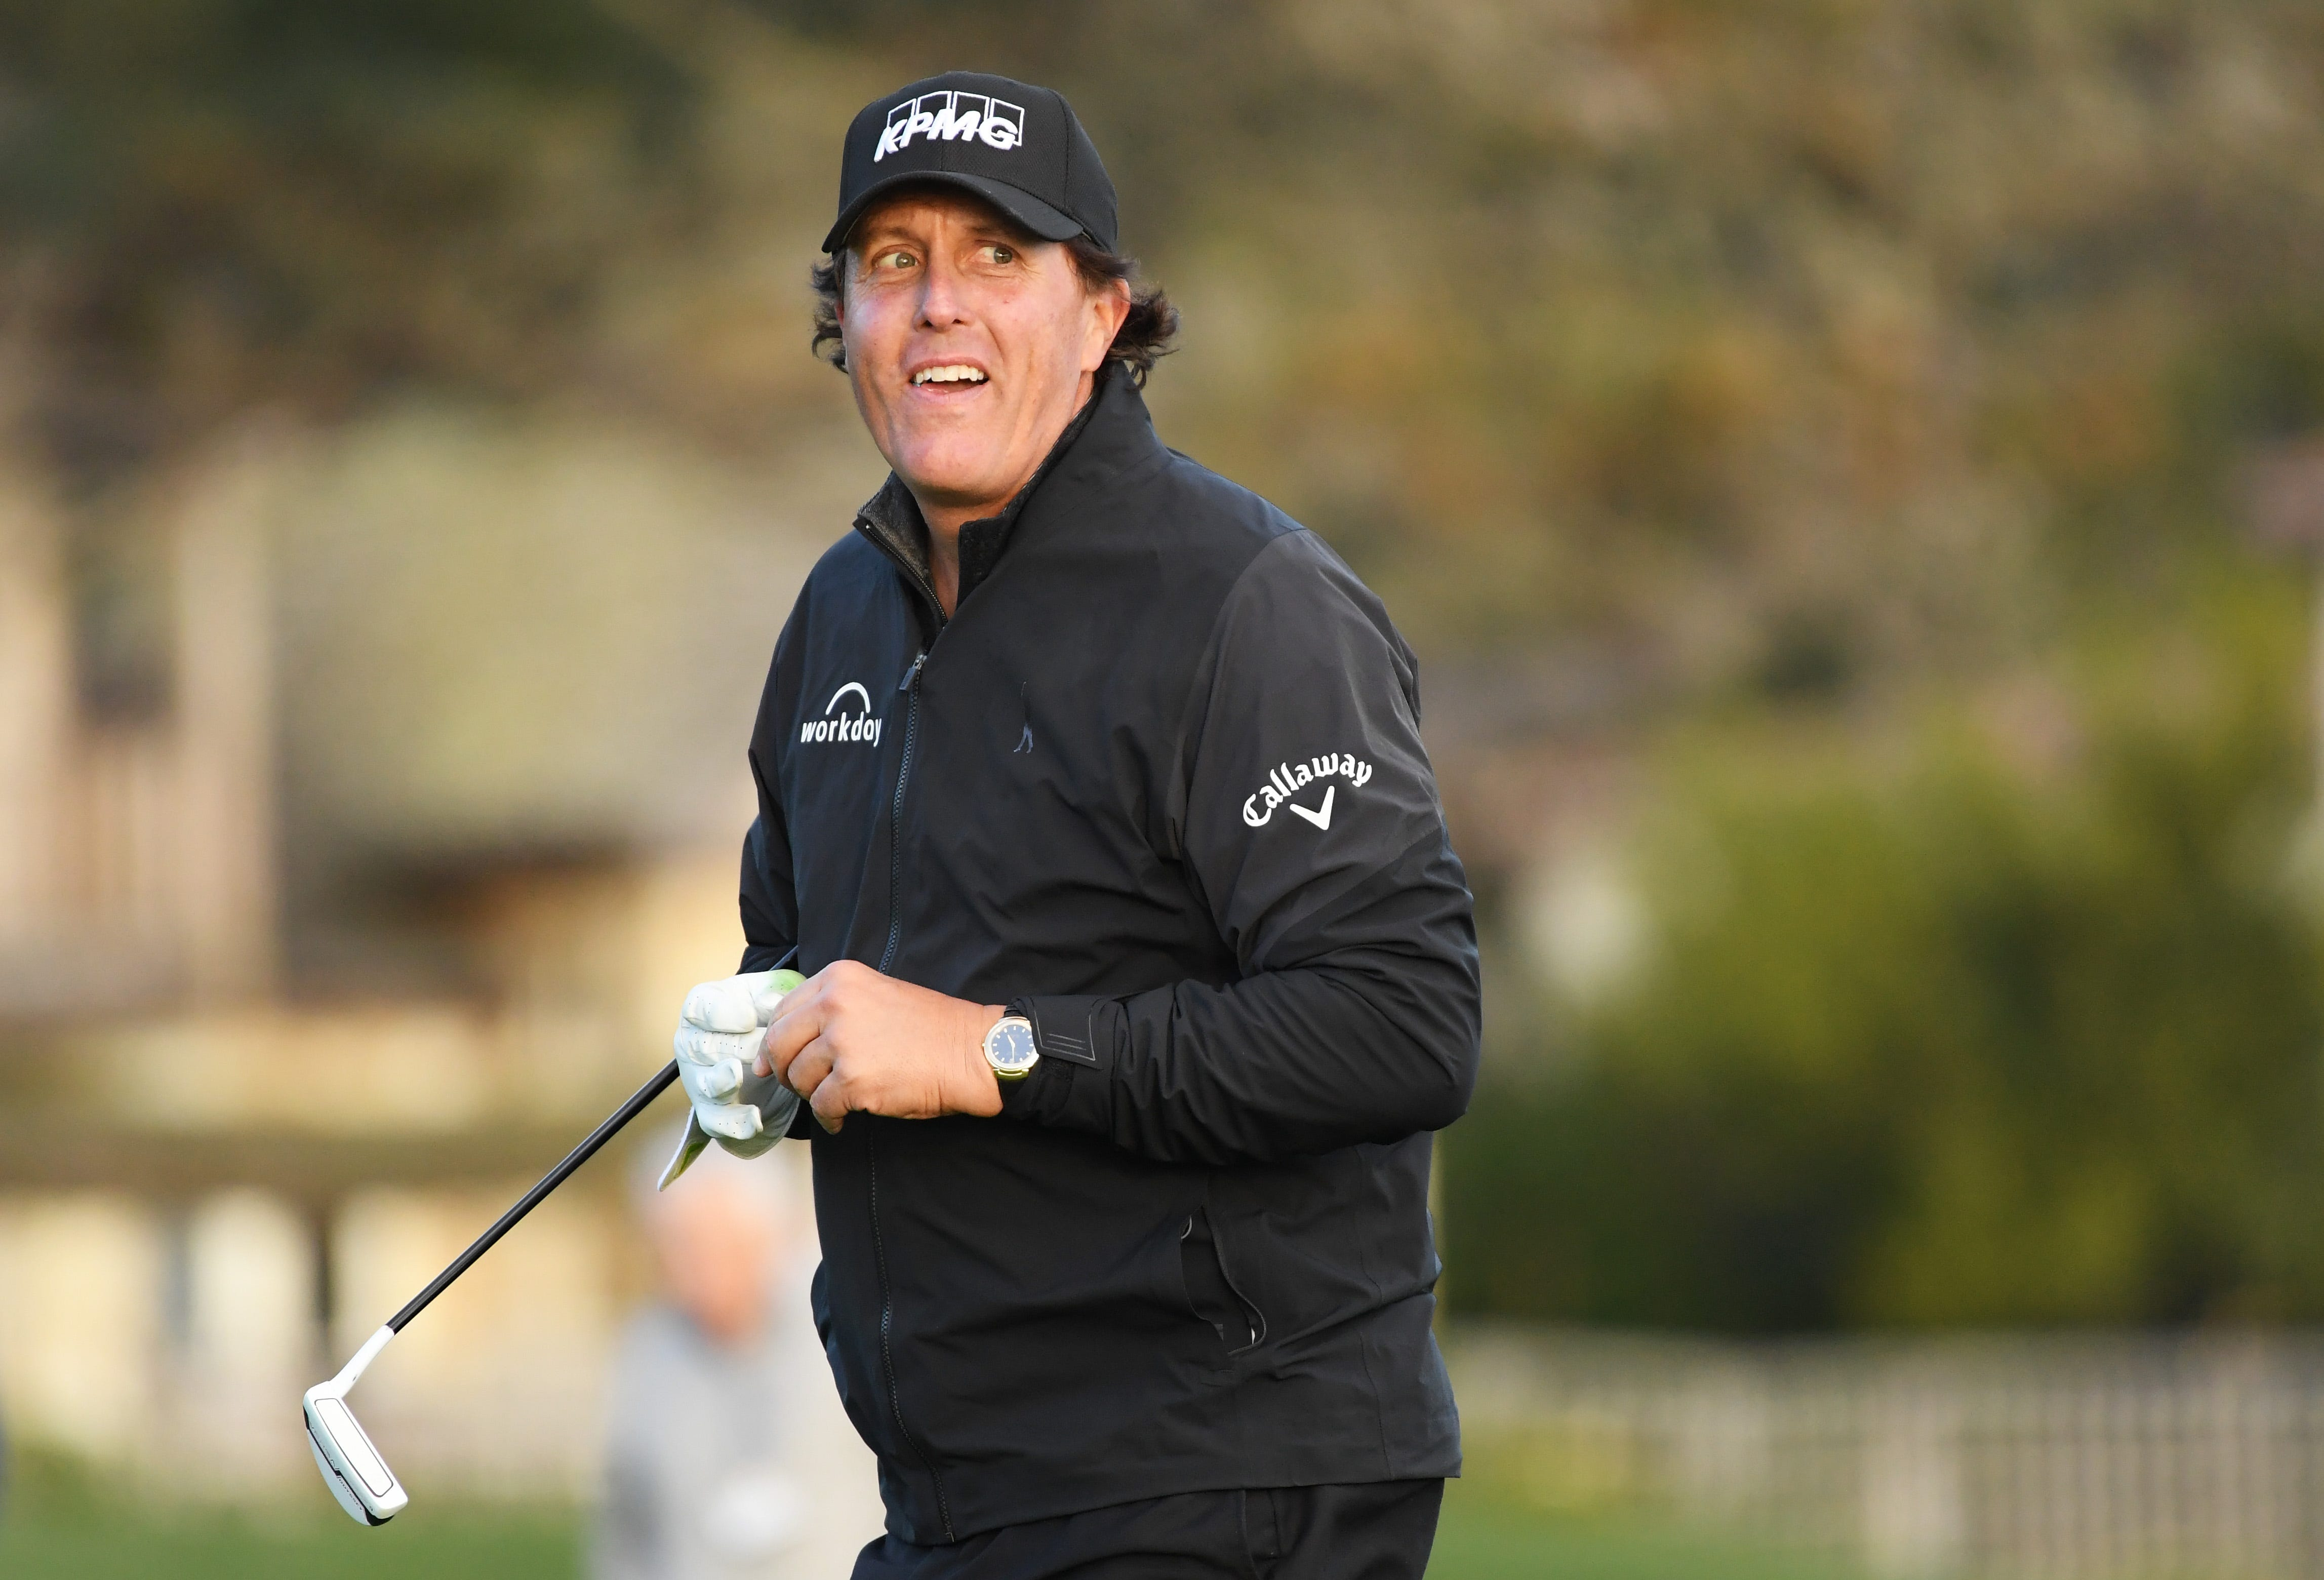 Phil Mickelson holds on for AT&T Pebble Beach Pro-Am win with Monday finish